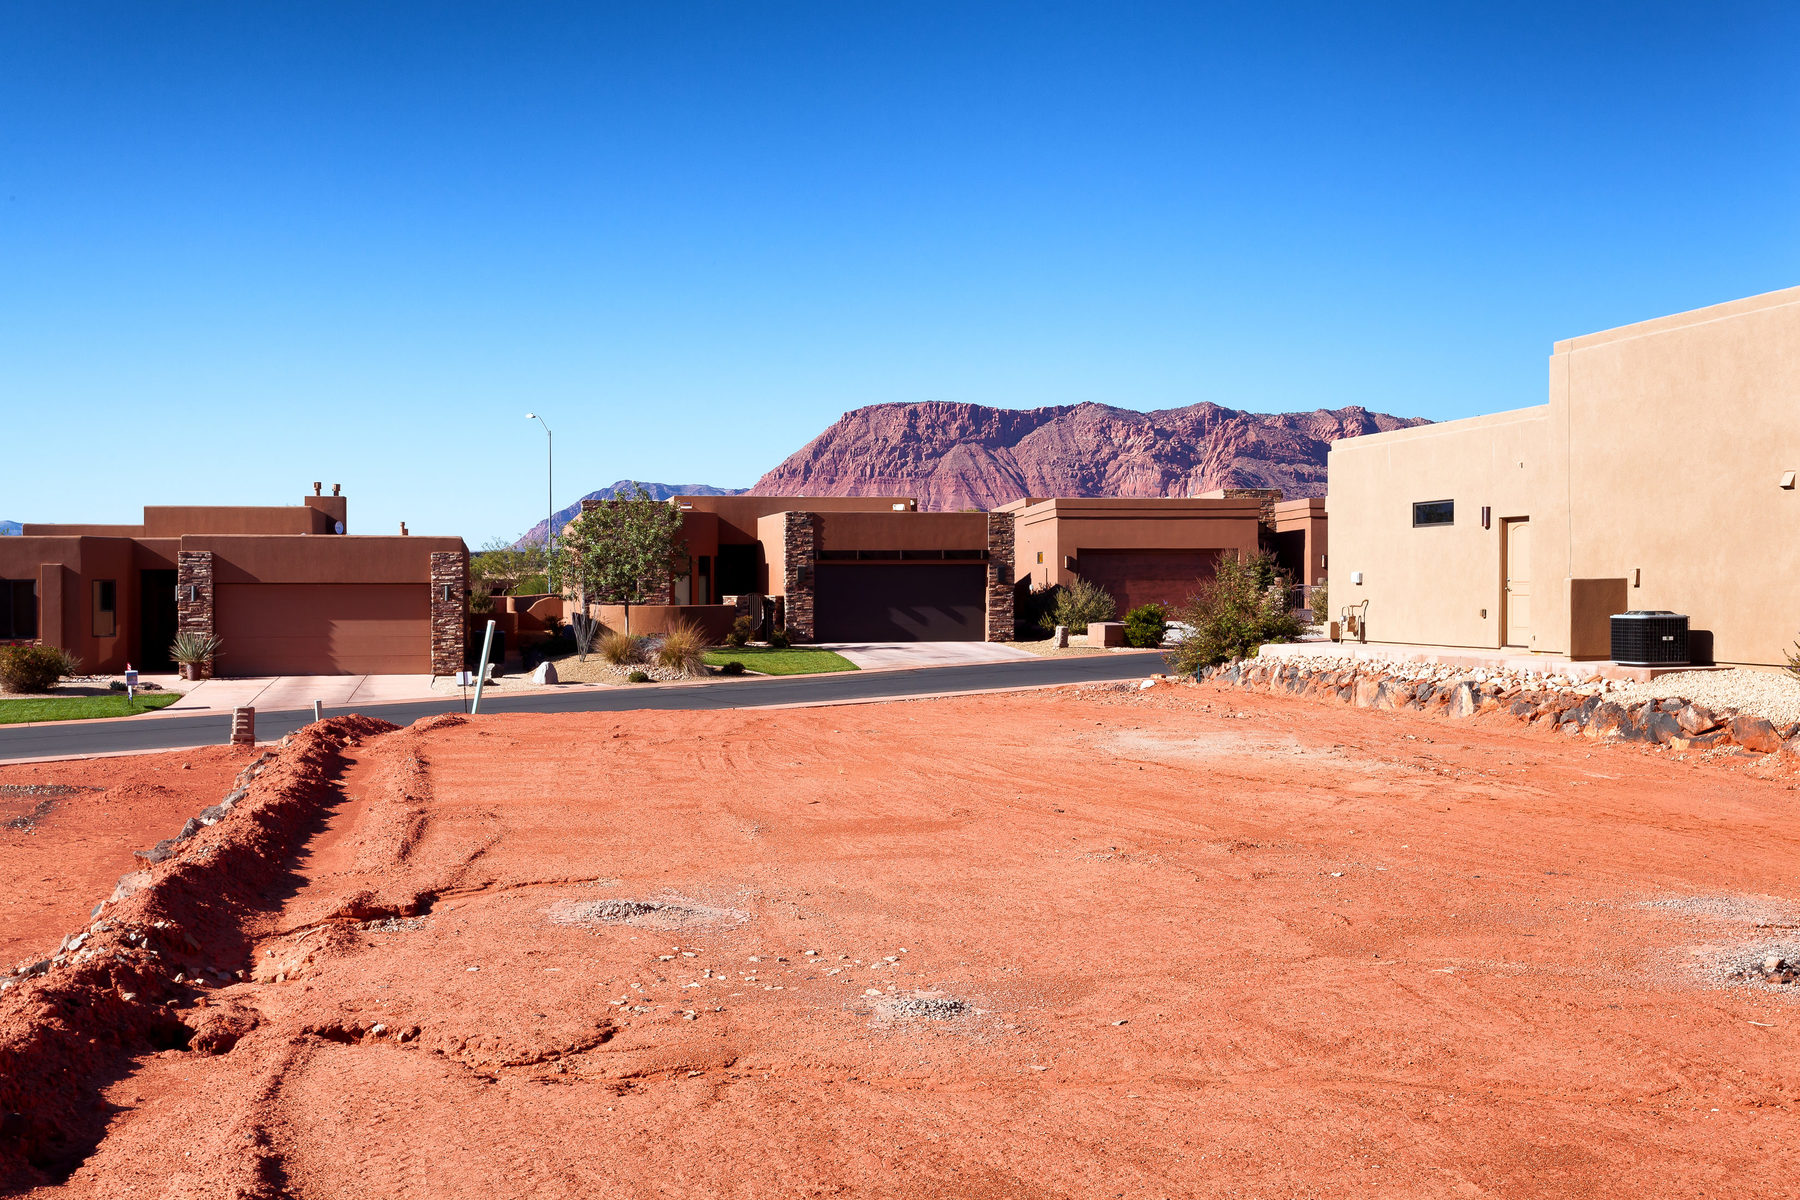 Terreno para Venda às Exclusive Tuweap Point Lot 2090 N Tuweap Dr Lot 56 St. George, Utah, 84770 Estados Unidos